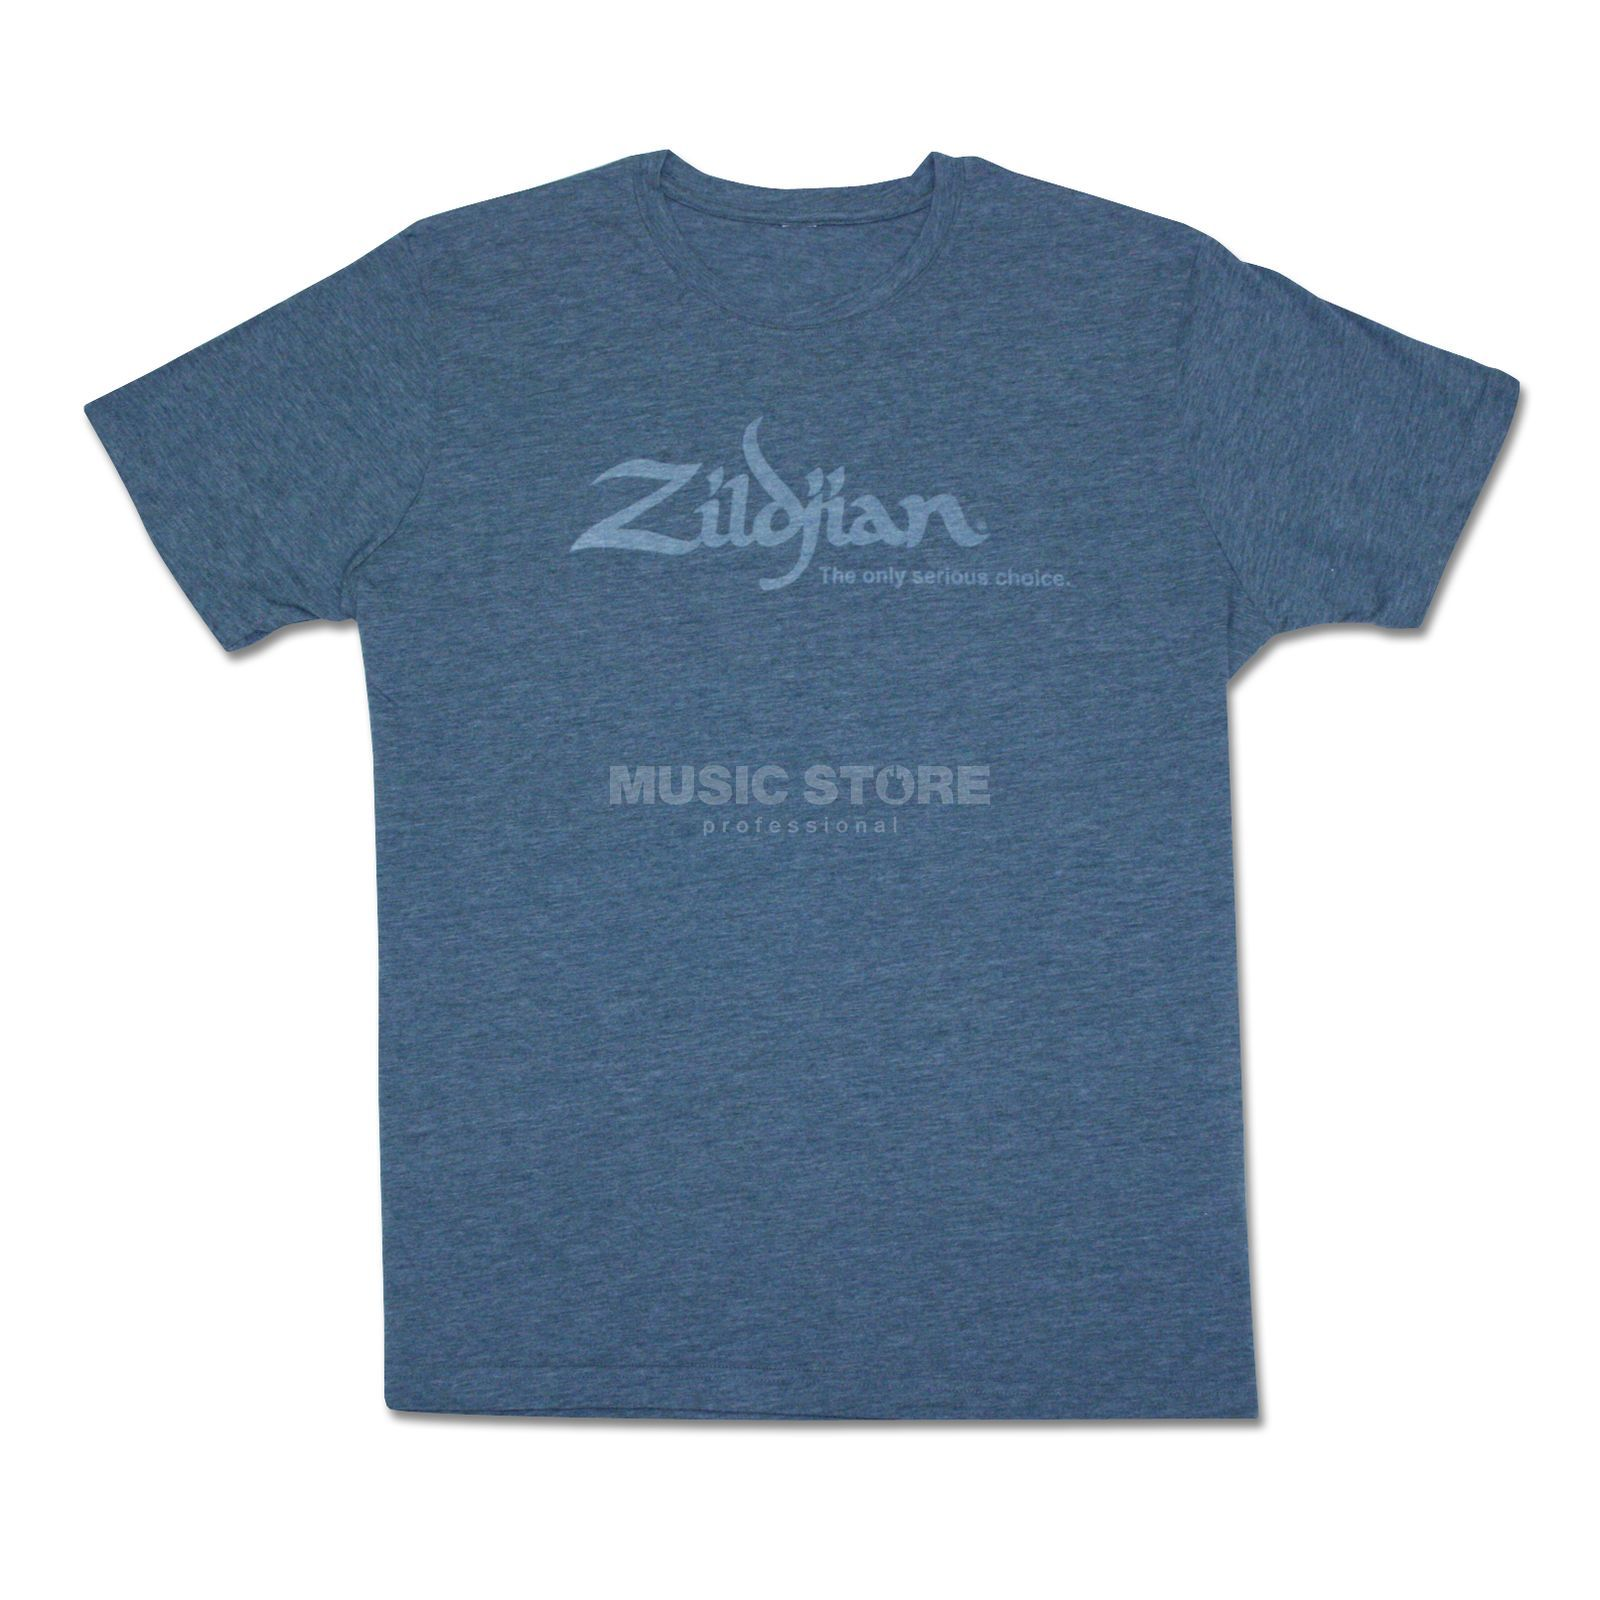 Zildjian T-Shirt Heathered Blue, meliert, XXL Product Image